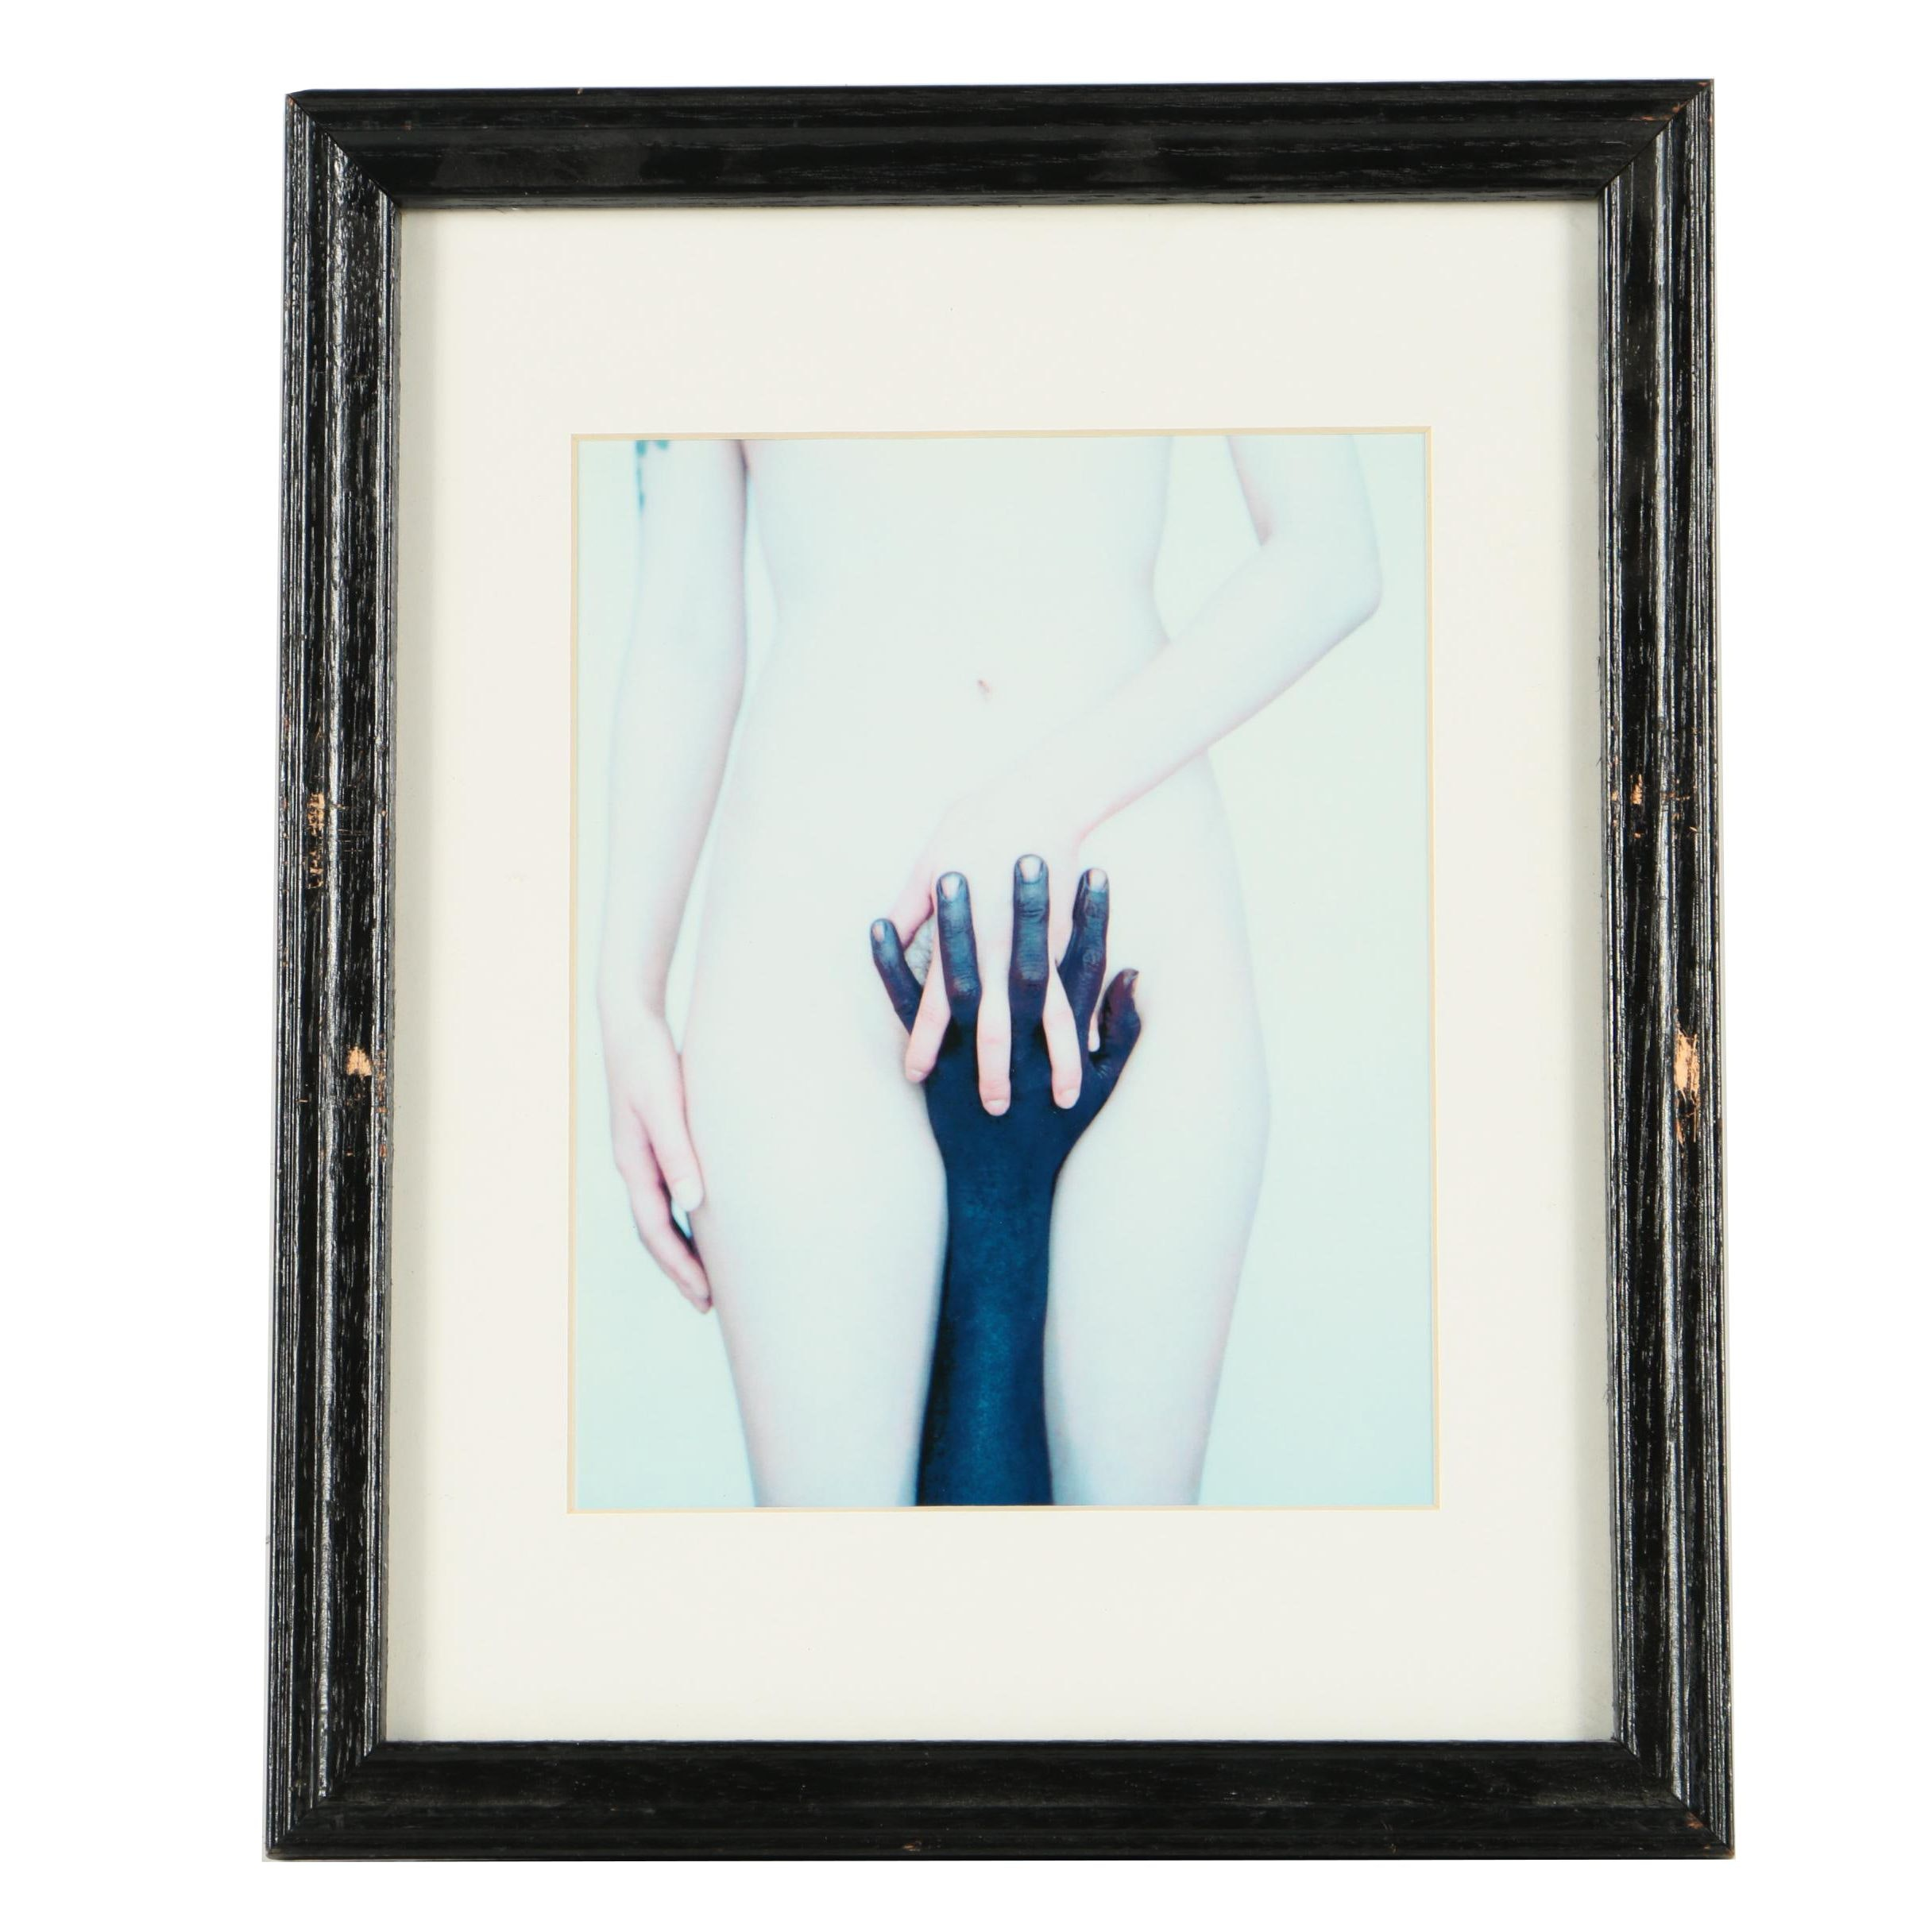 """Barron Claiborne Limited Edition Photographic Print from """"Africanus"""" Series"""